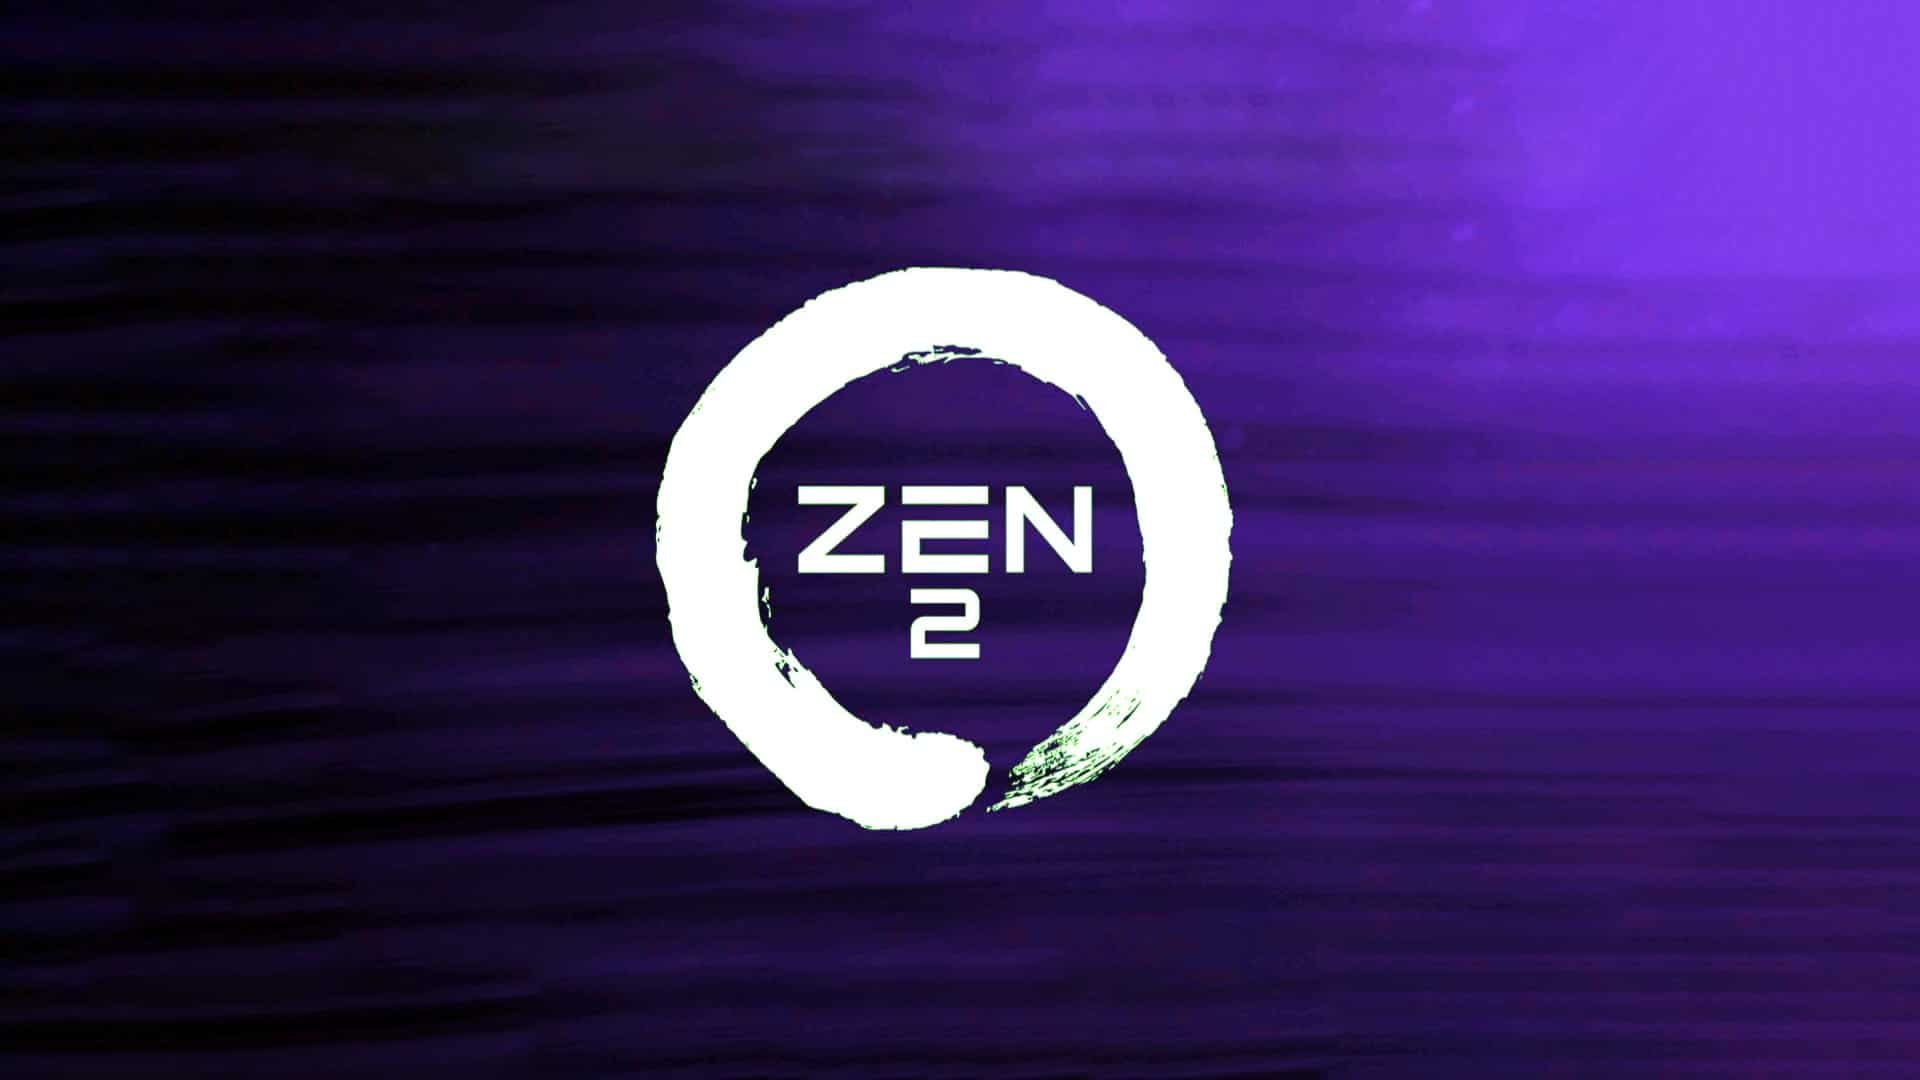 AMD Zen 2 Logo Purple